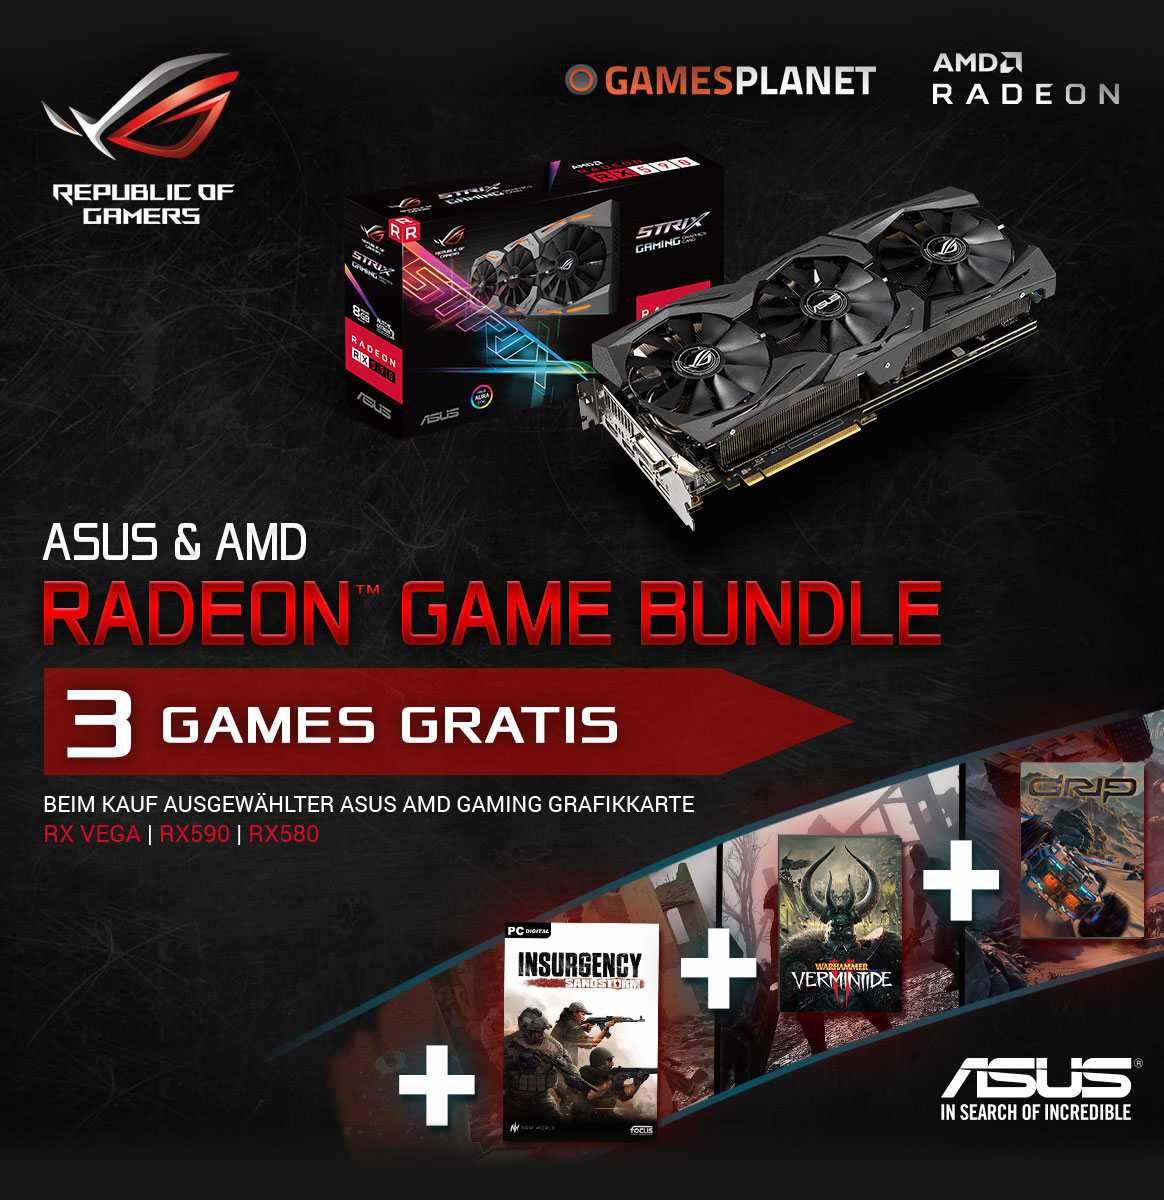 Radeon Game Bundle